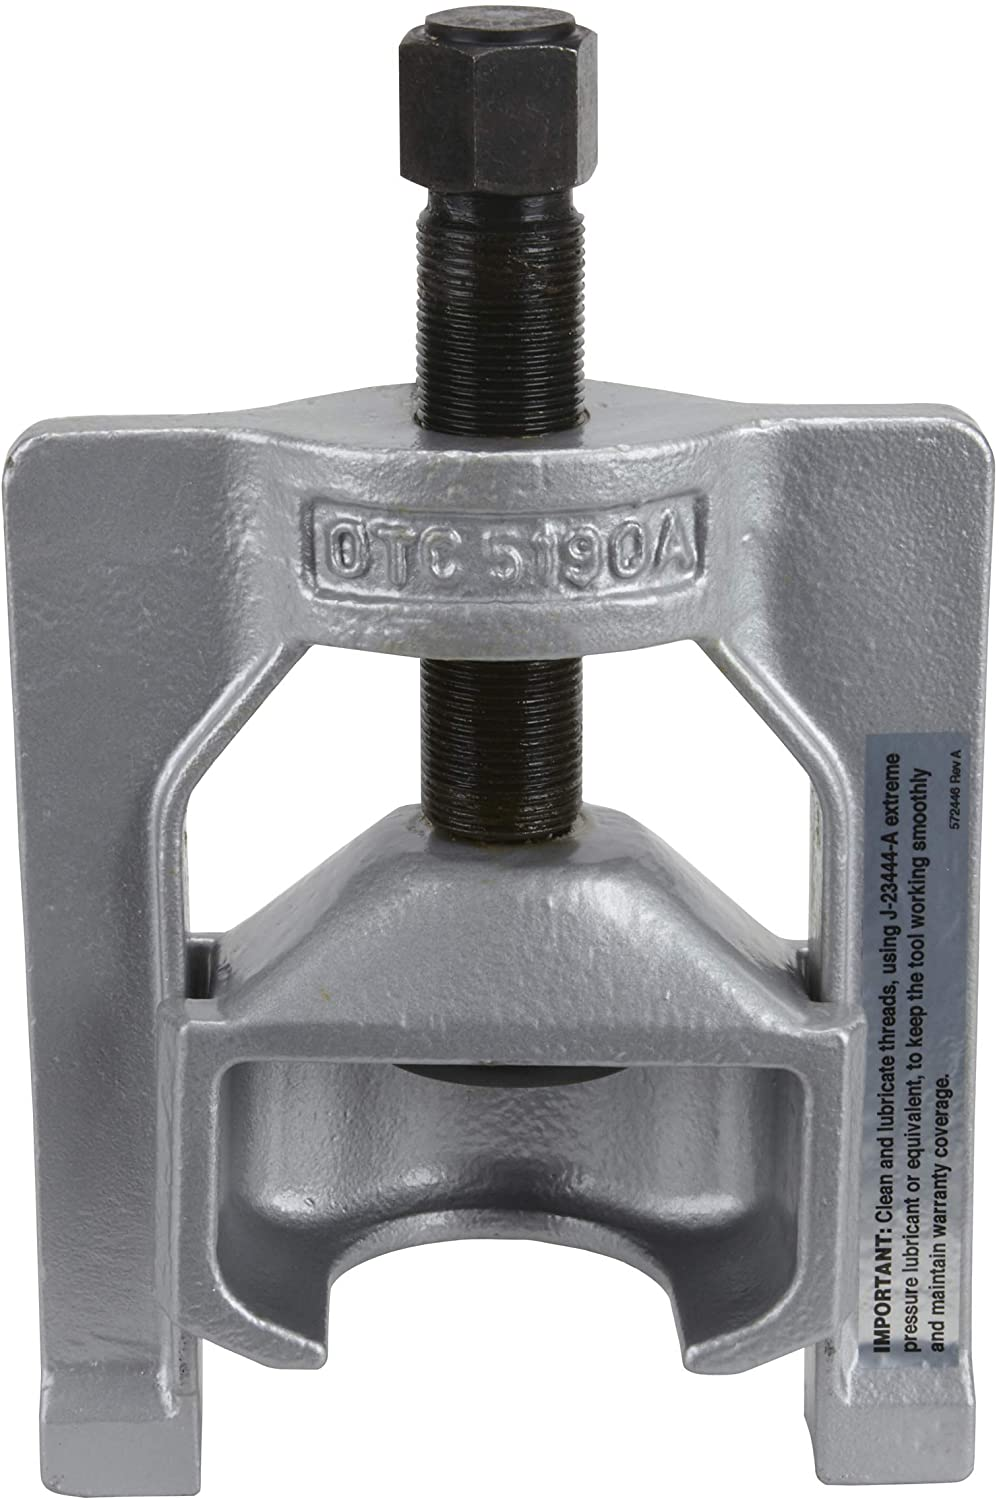 Class 1-3 Universal Joint Puller 10105 Heavy Duty U-Joint Puller Automotive